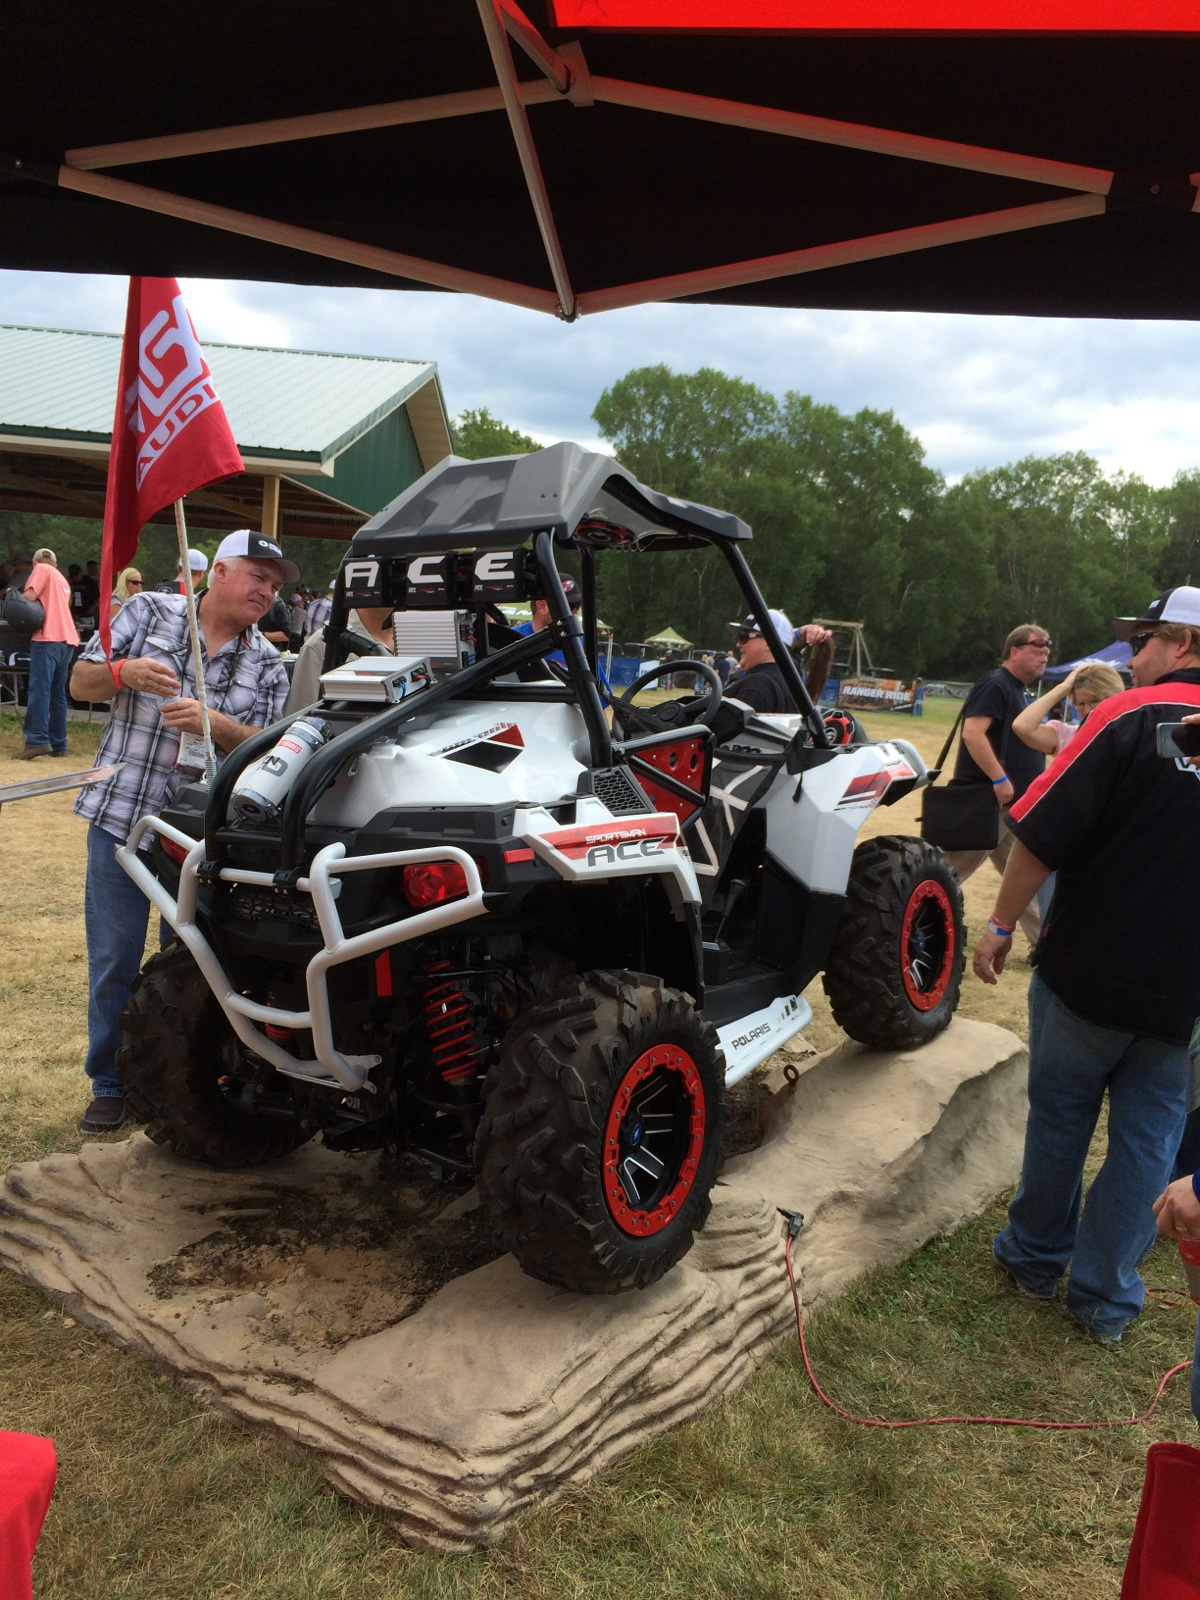 Dealers Checking out the MTX Polaris ACE